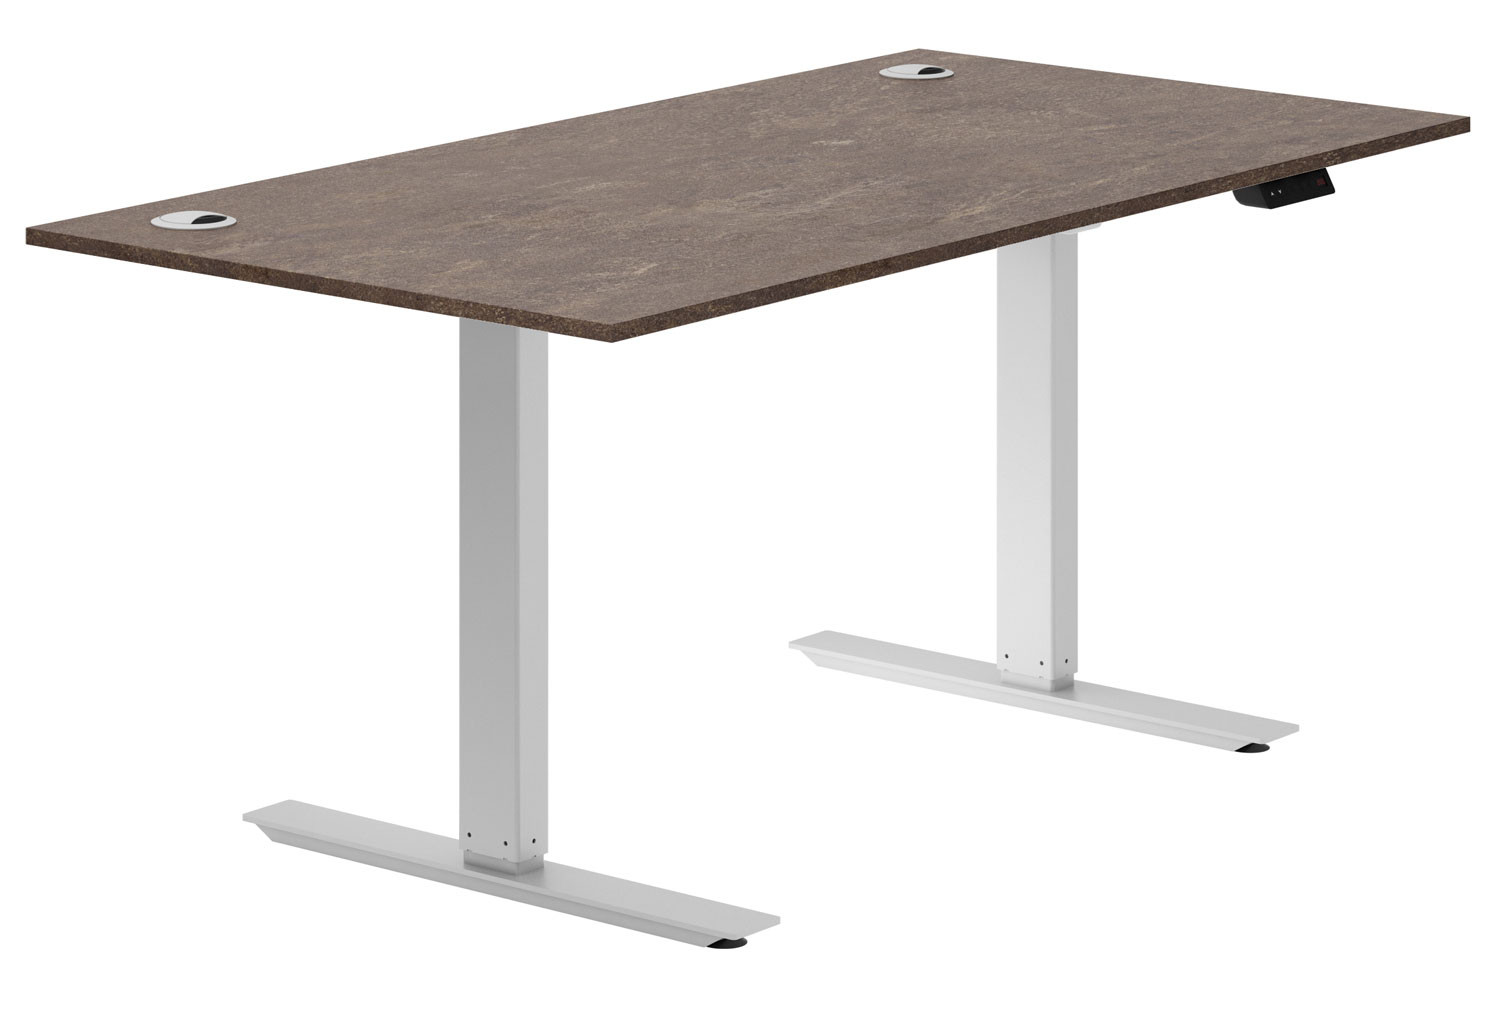 Lasso Sit & Stand Desk (Pitted Steel)